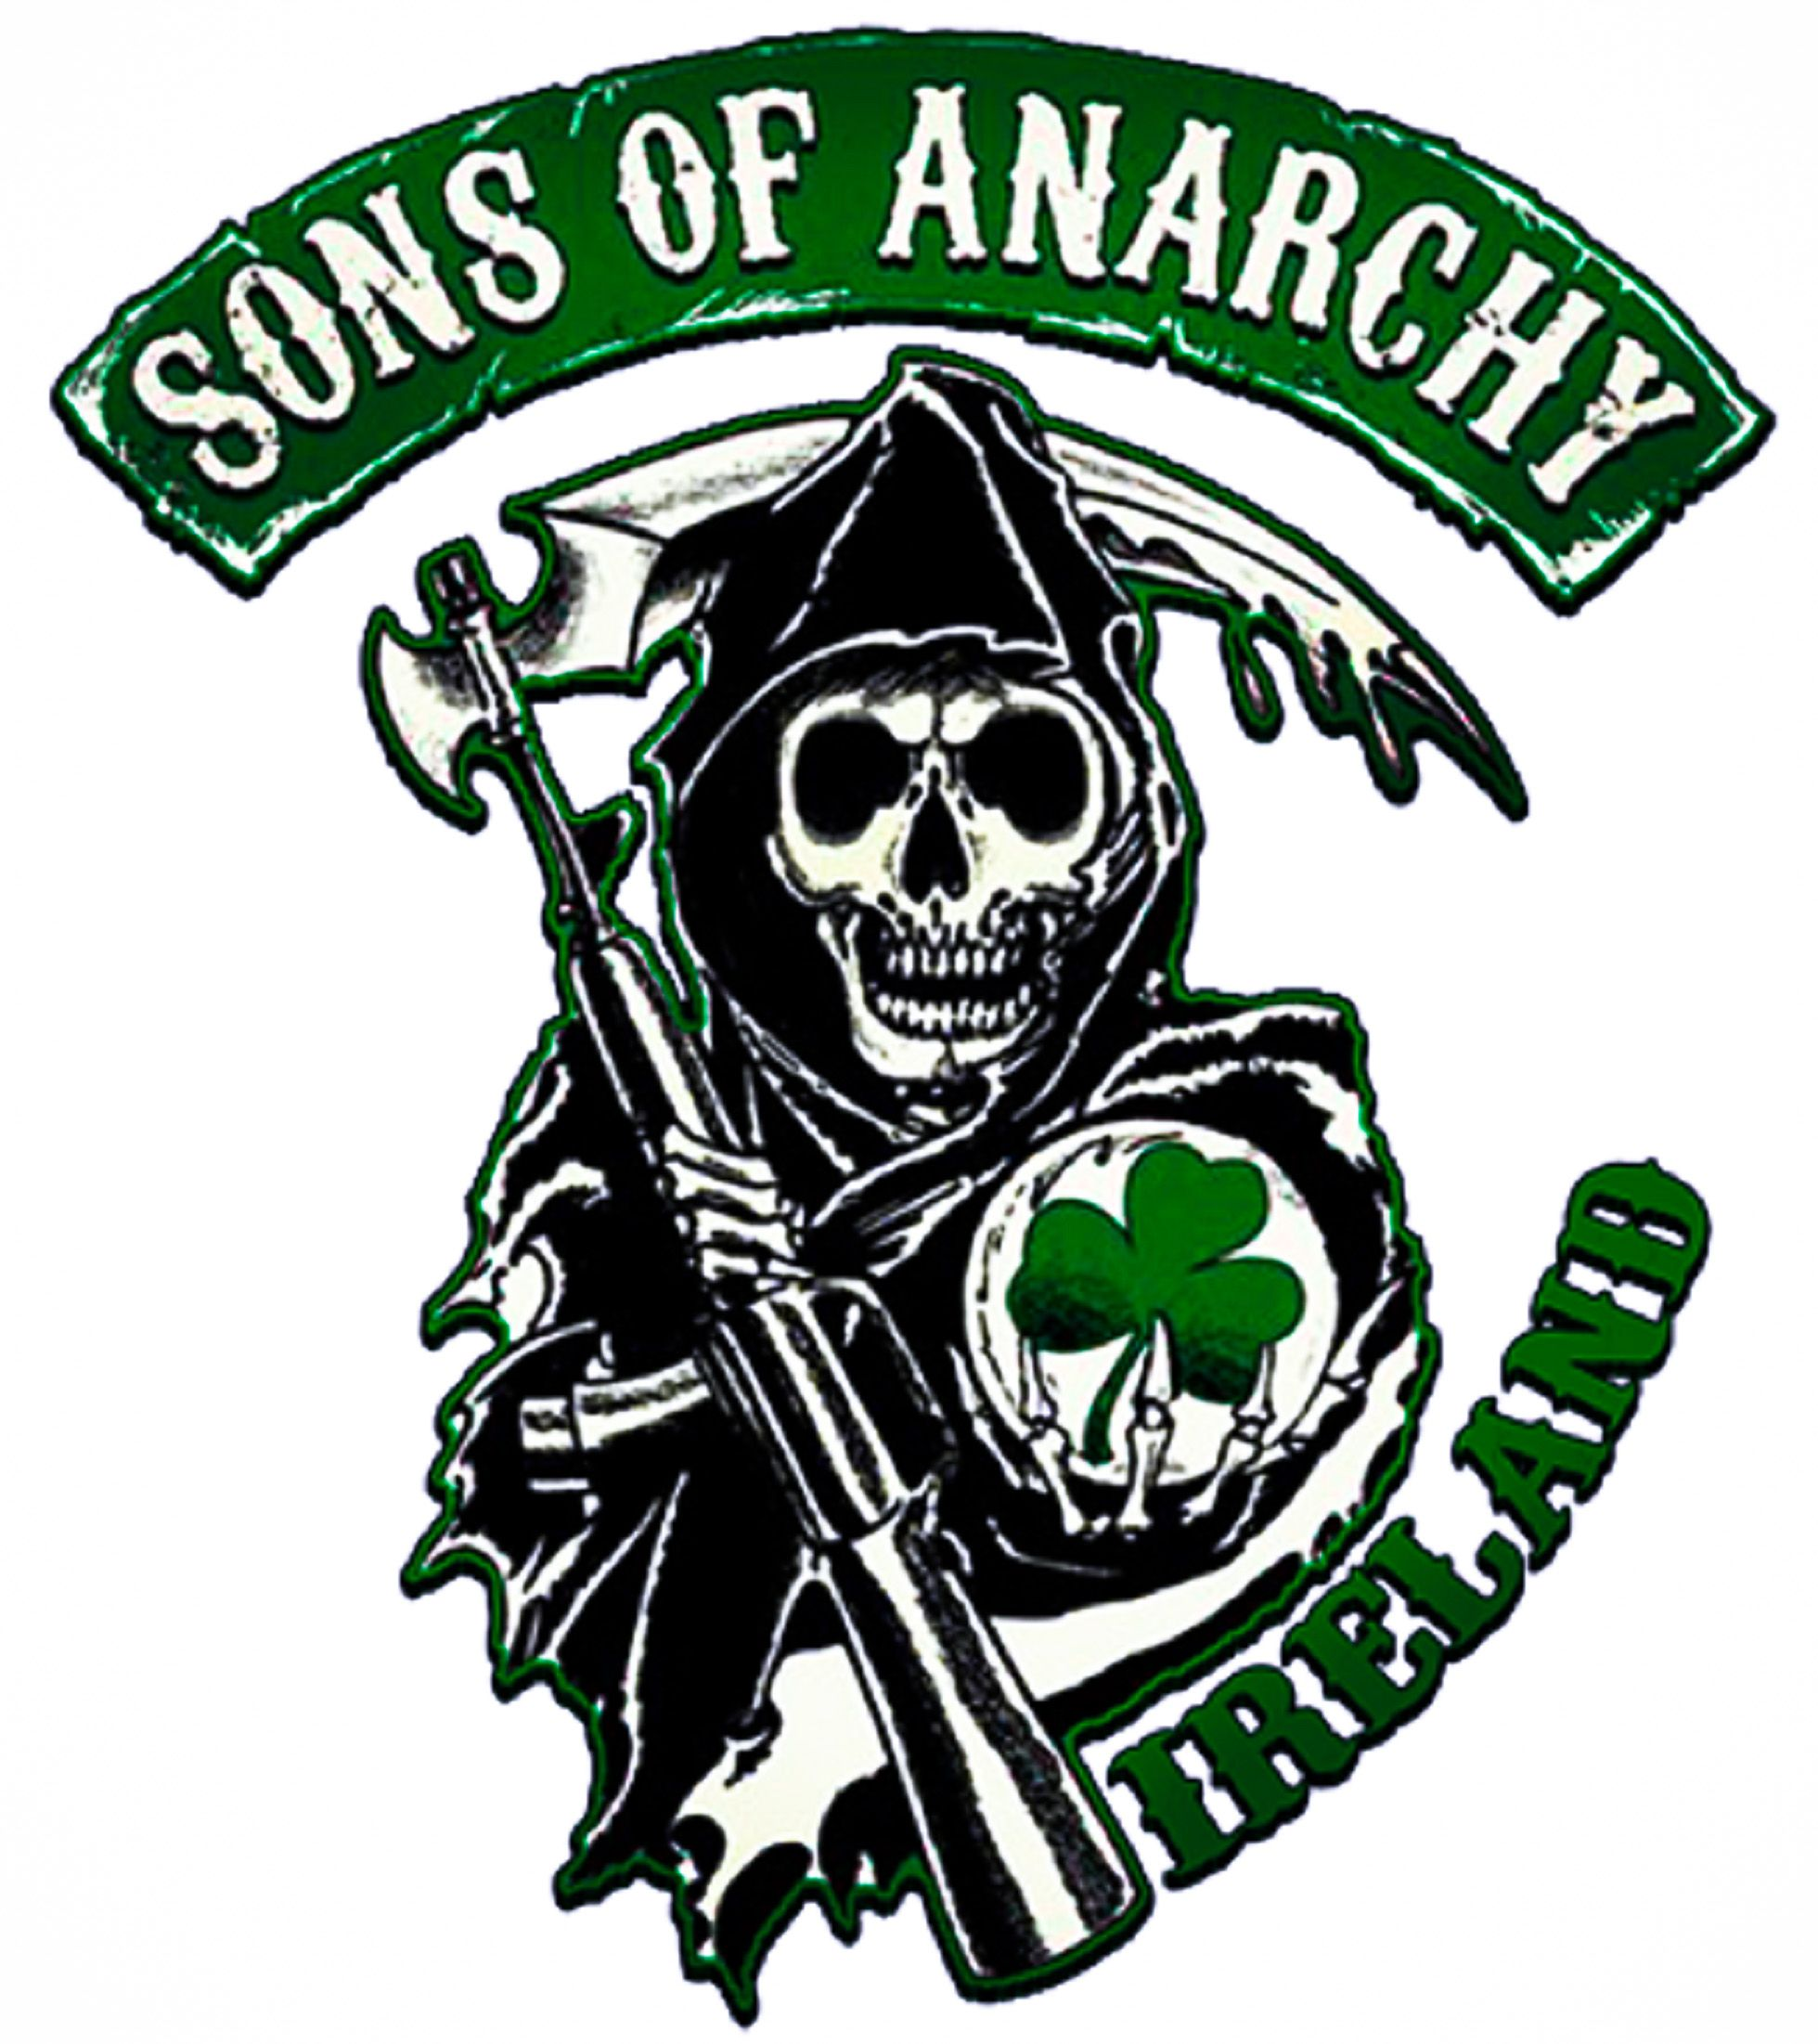 sons of anarchy motorcycle club located in belfast northern ireland rh pinterest com au sons of anarchy logo meaning sons of anarchy logo 3d